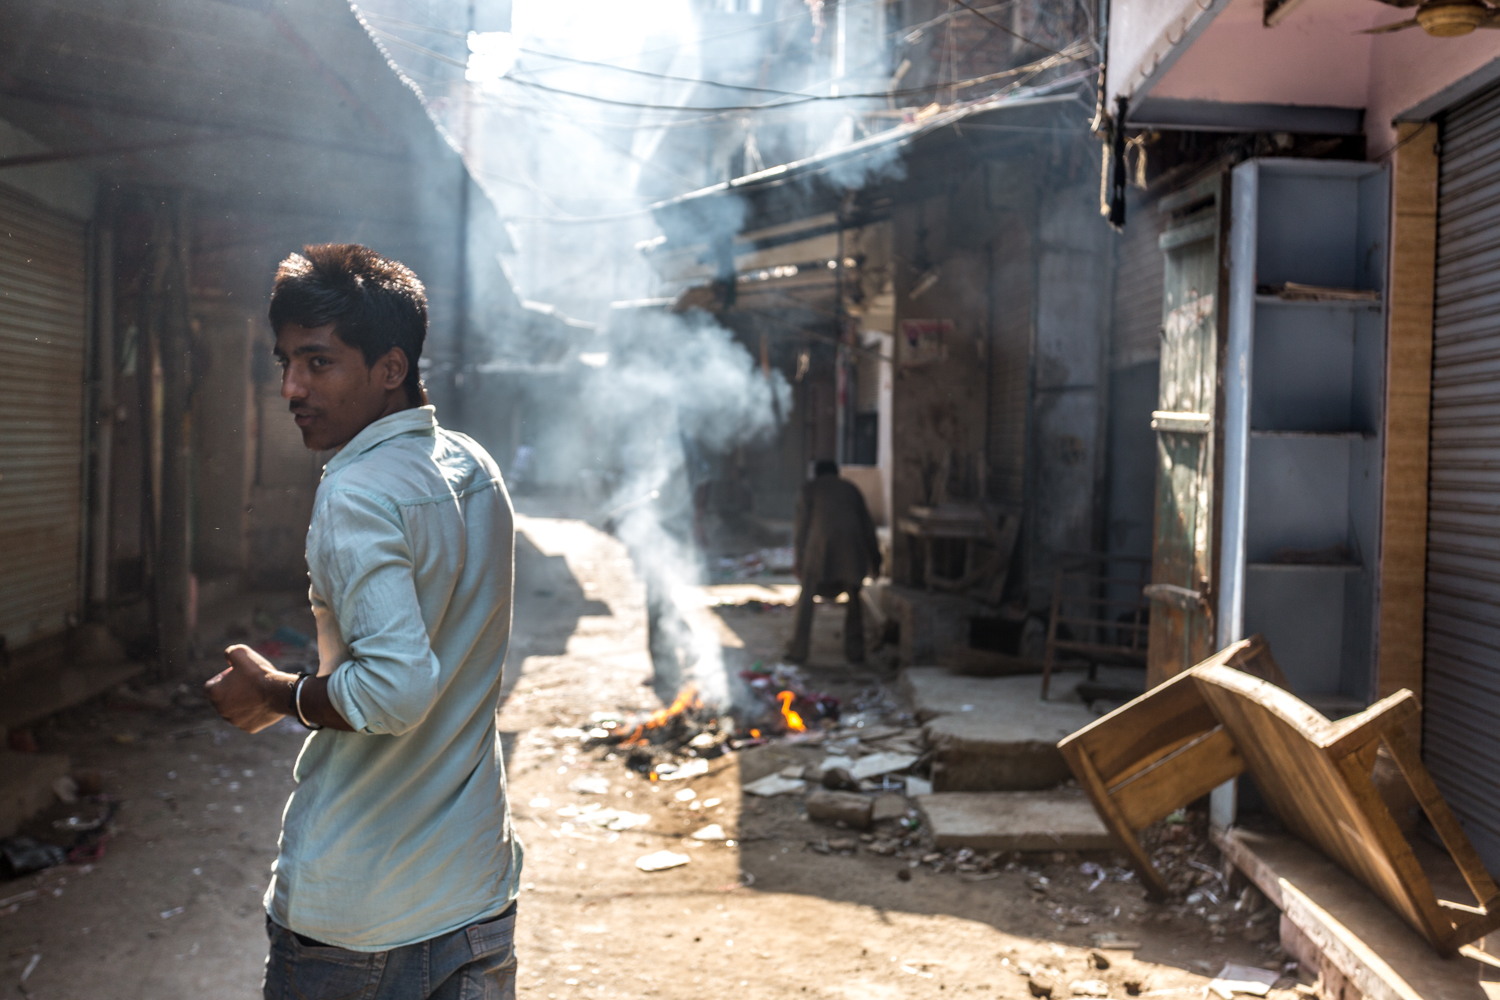 Surrounding the Harmandir Sahib complex is gritty capillary network of narrow market streets. In this picture,a young man walks past burning trash on a Monday, the day of the week when many stores close.